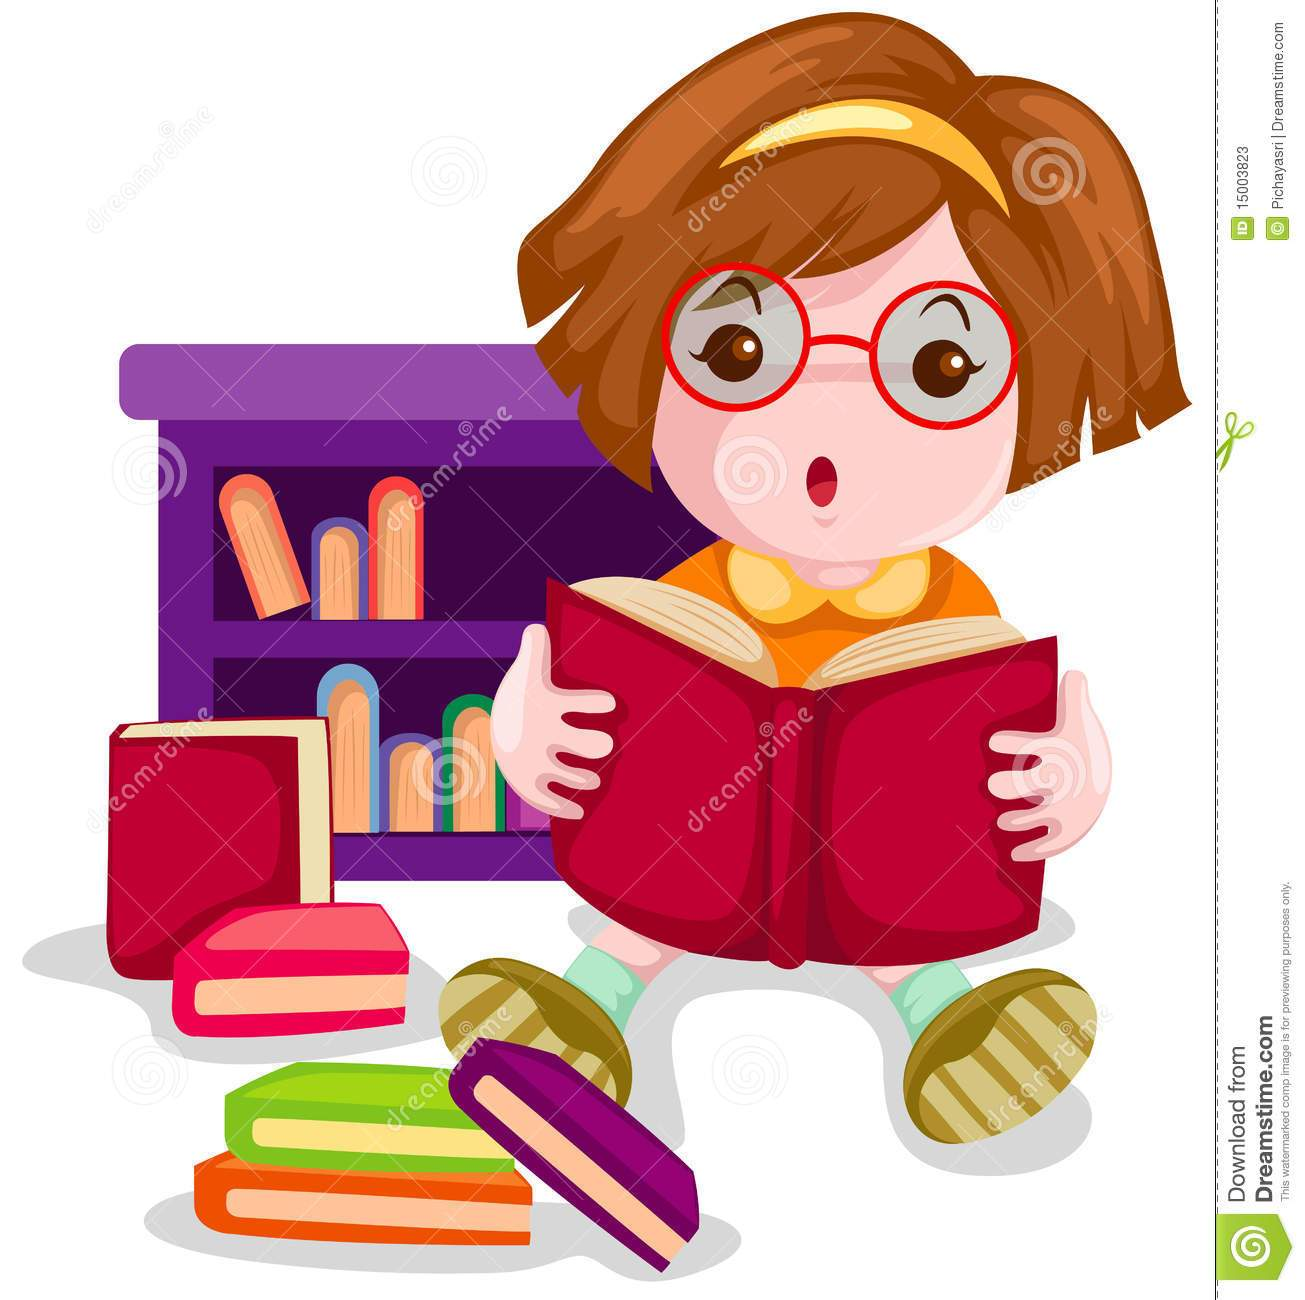 Cute girl reading a book clipart » Clipart Portal.